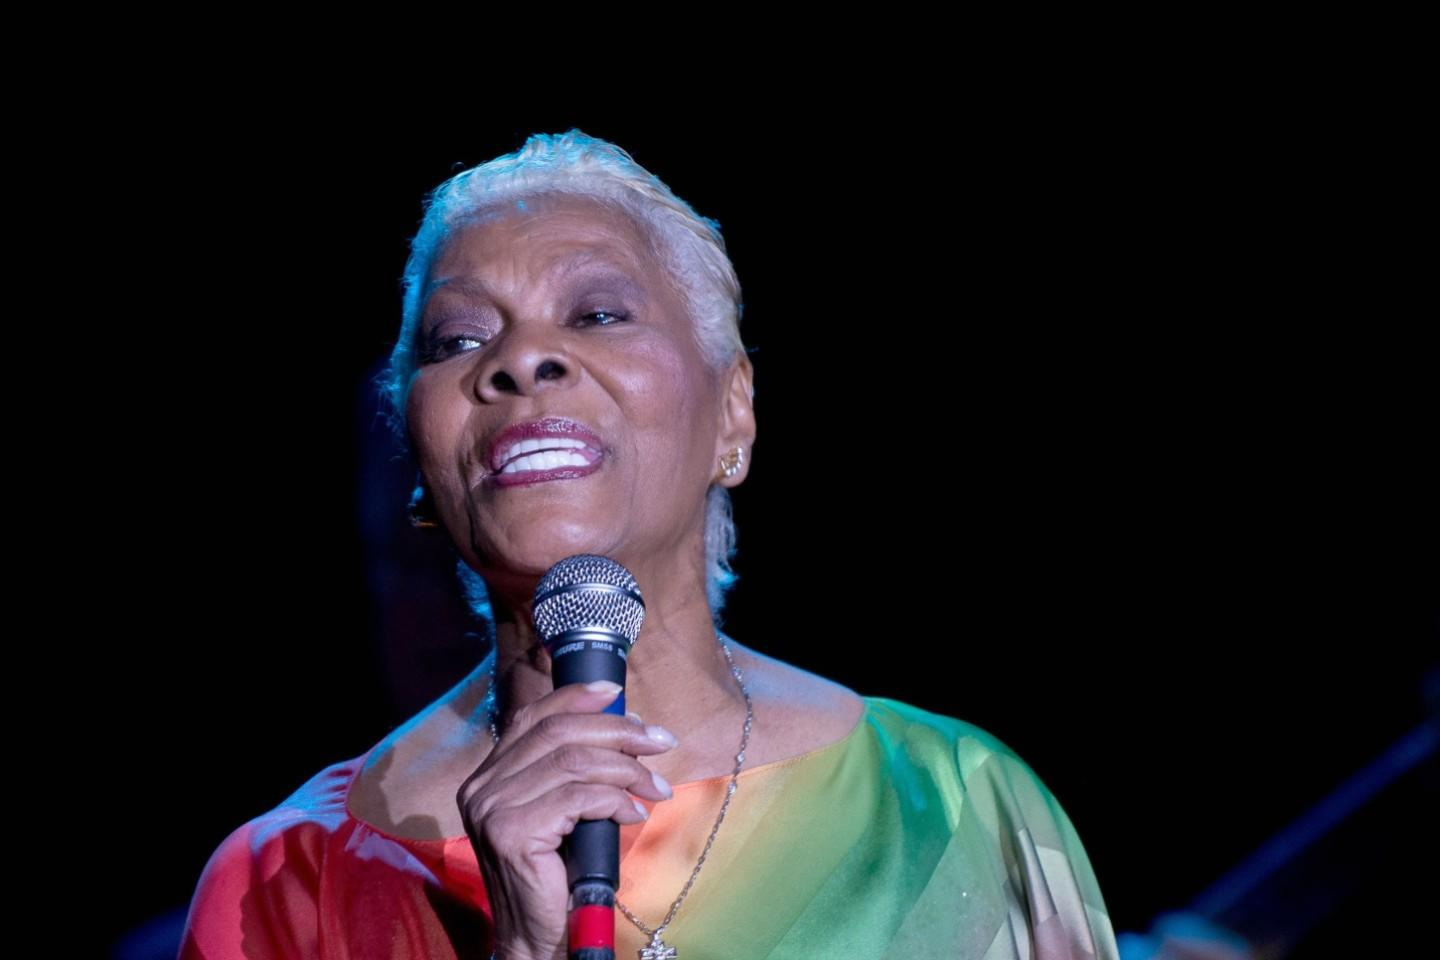 Dionne Warwick Tickets Dionne Warwick Tour 2019 And